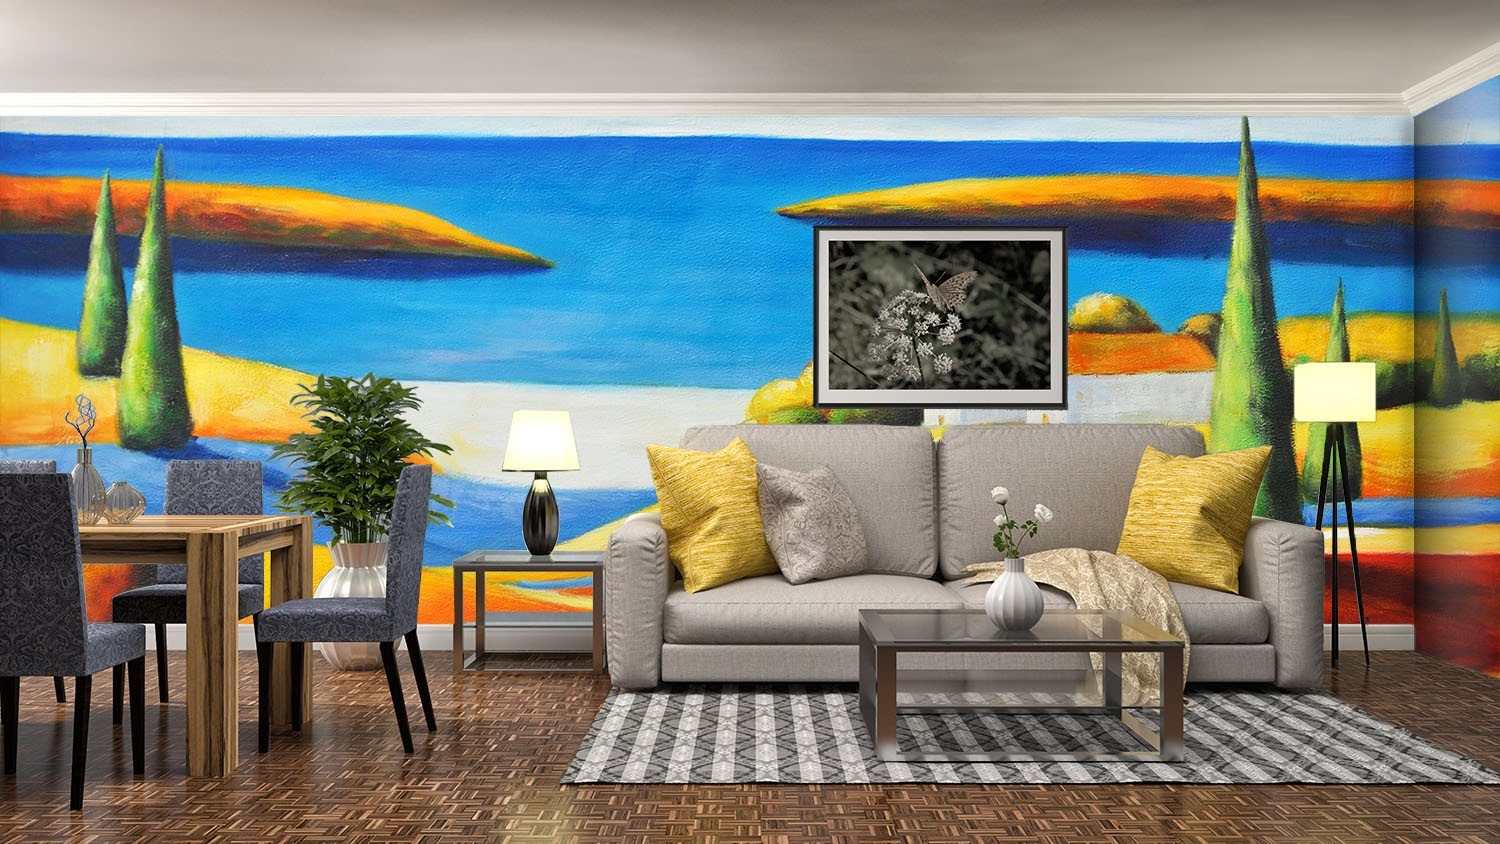 Beach Village Painting - AJ Walls - 3